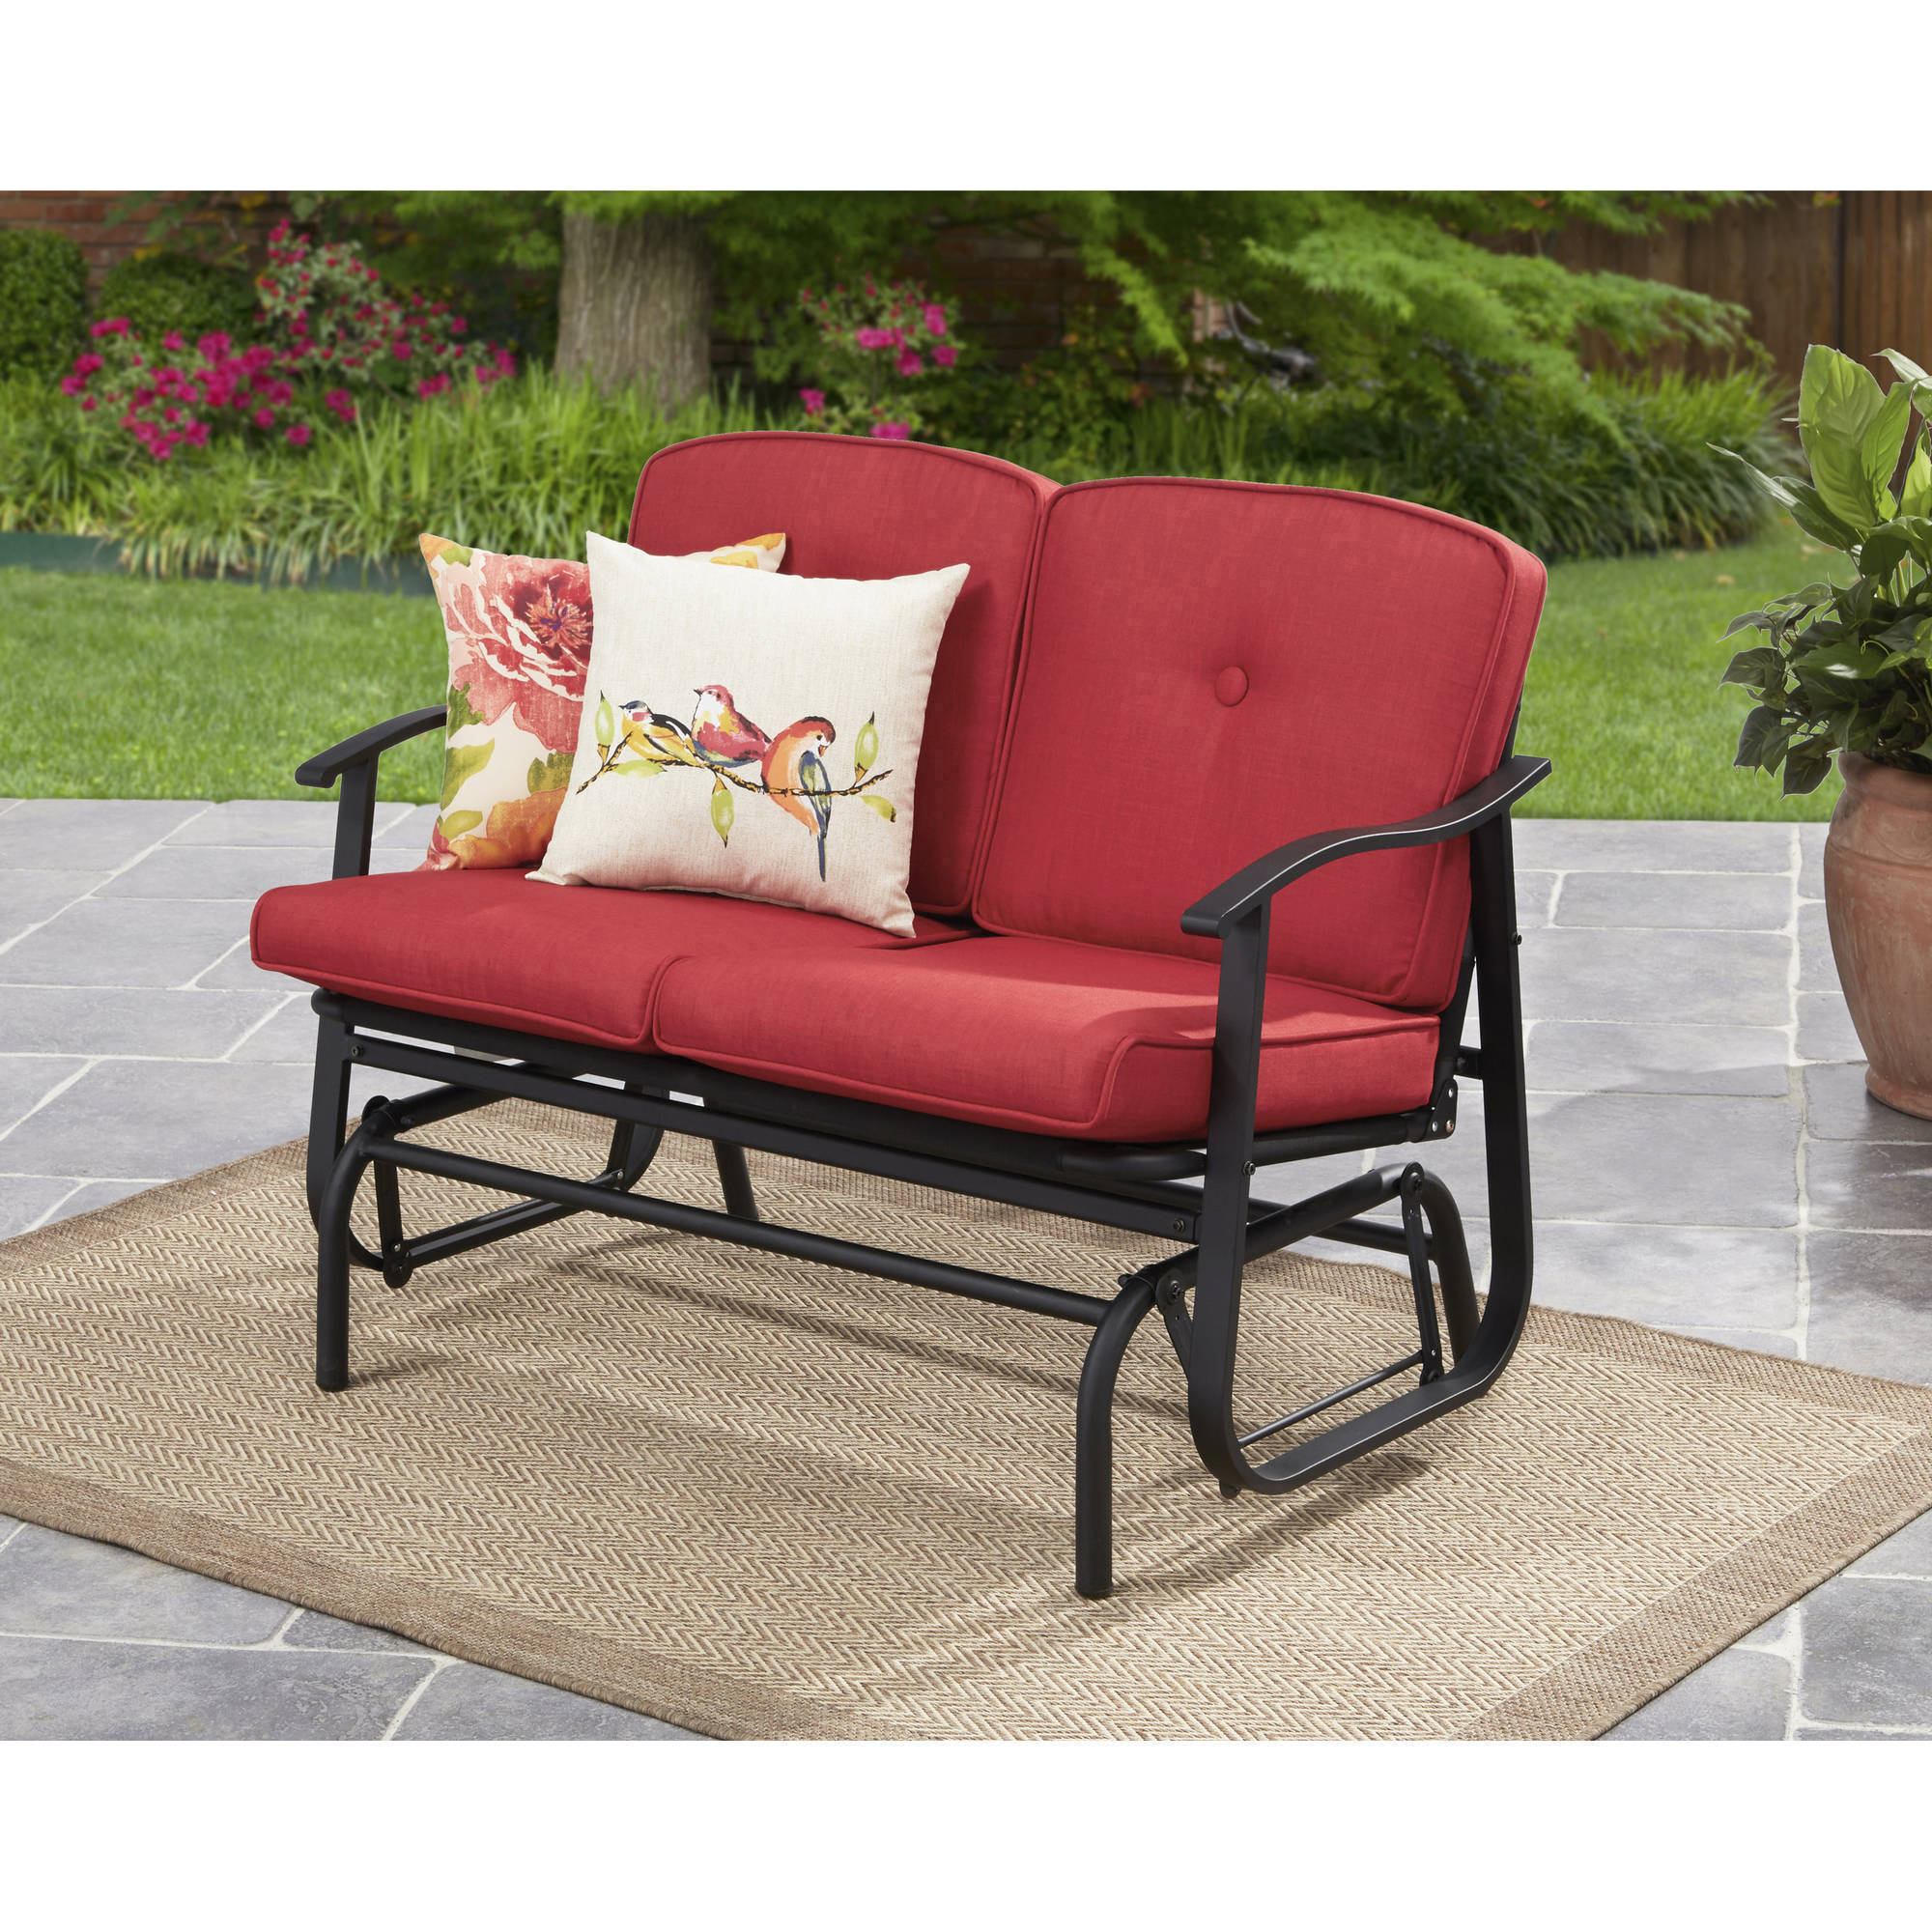 Mainstays Belden Park Outdoor Loveseat Glider With Cushion – Walmart Throughout Glider Benches With Cushions (View 16 of 25)